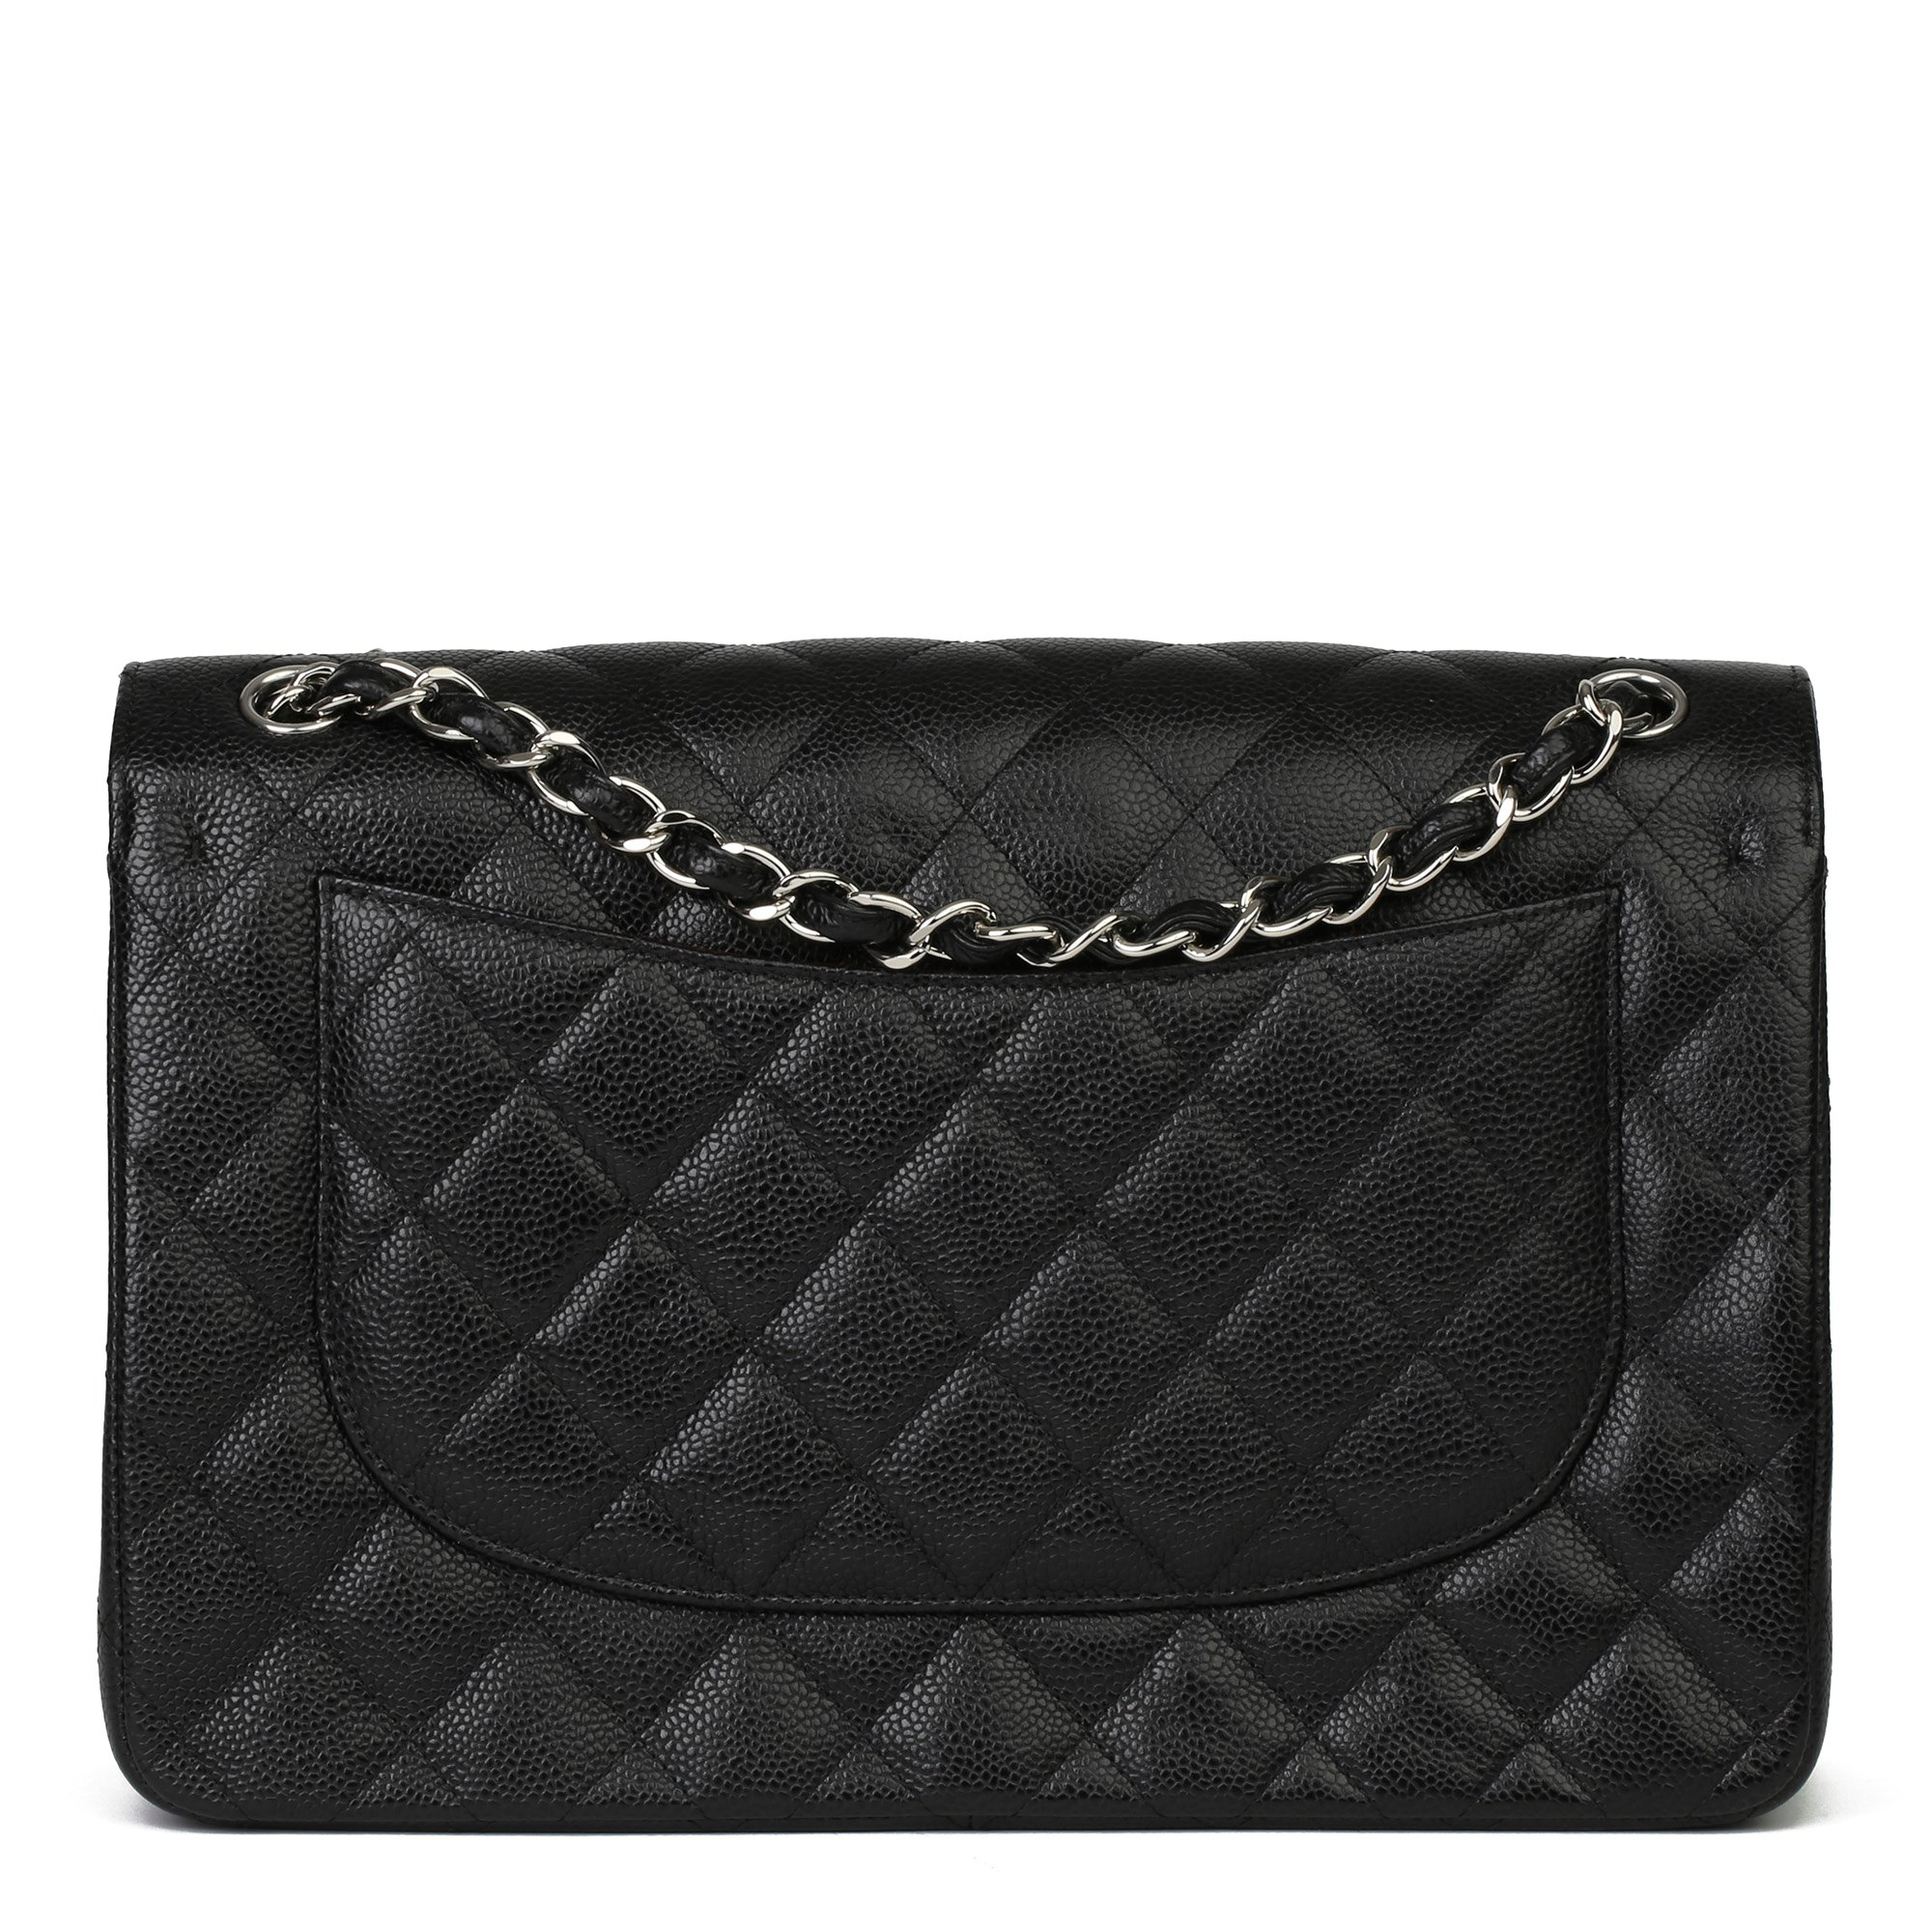 Chanel Black Quilted Caviar Leather Vintage Jumbo Classic Double Flap Bag